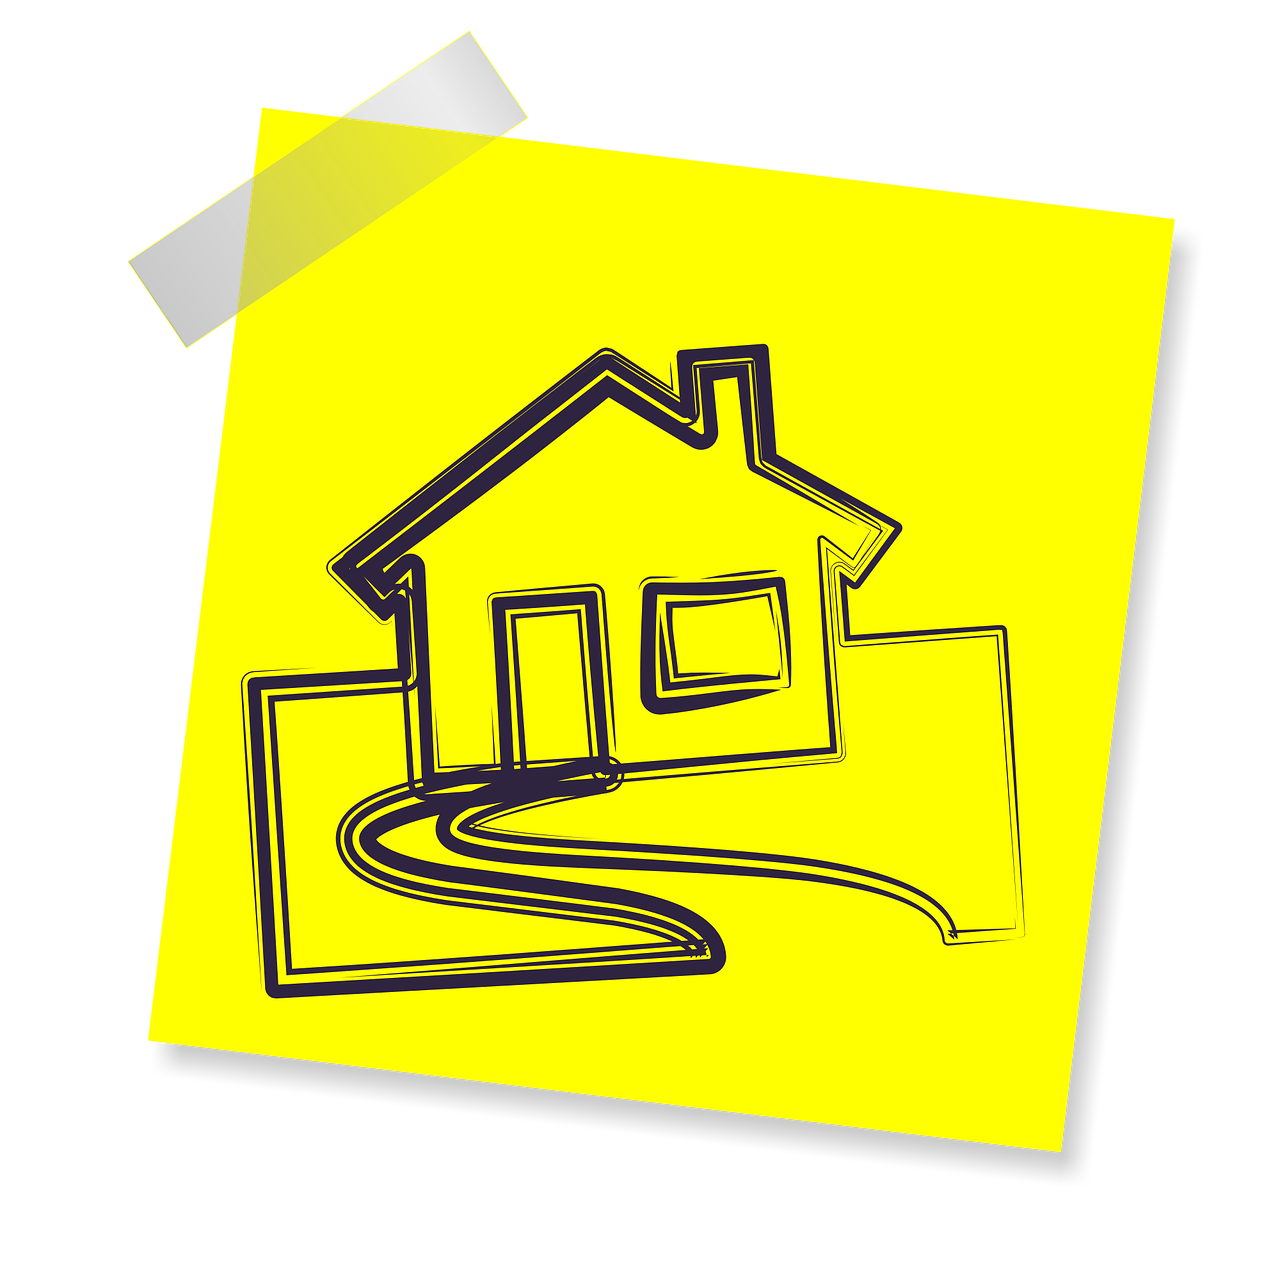 Field Experiments on the Impacts of Financial Planning Interventions for Recent Homebuyers